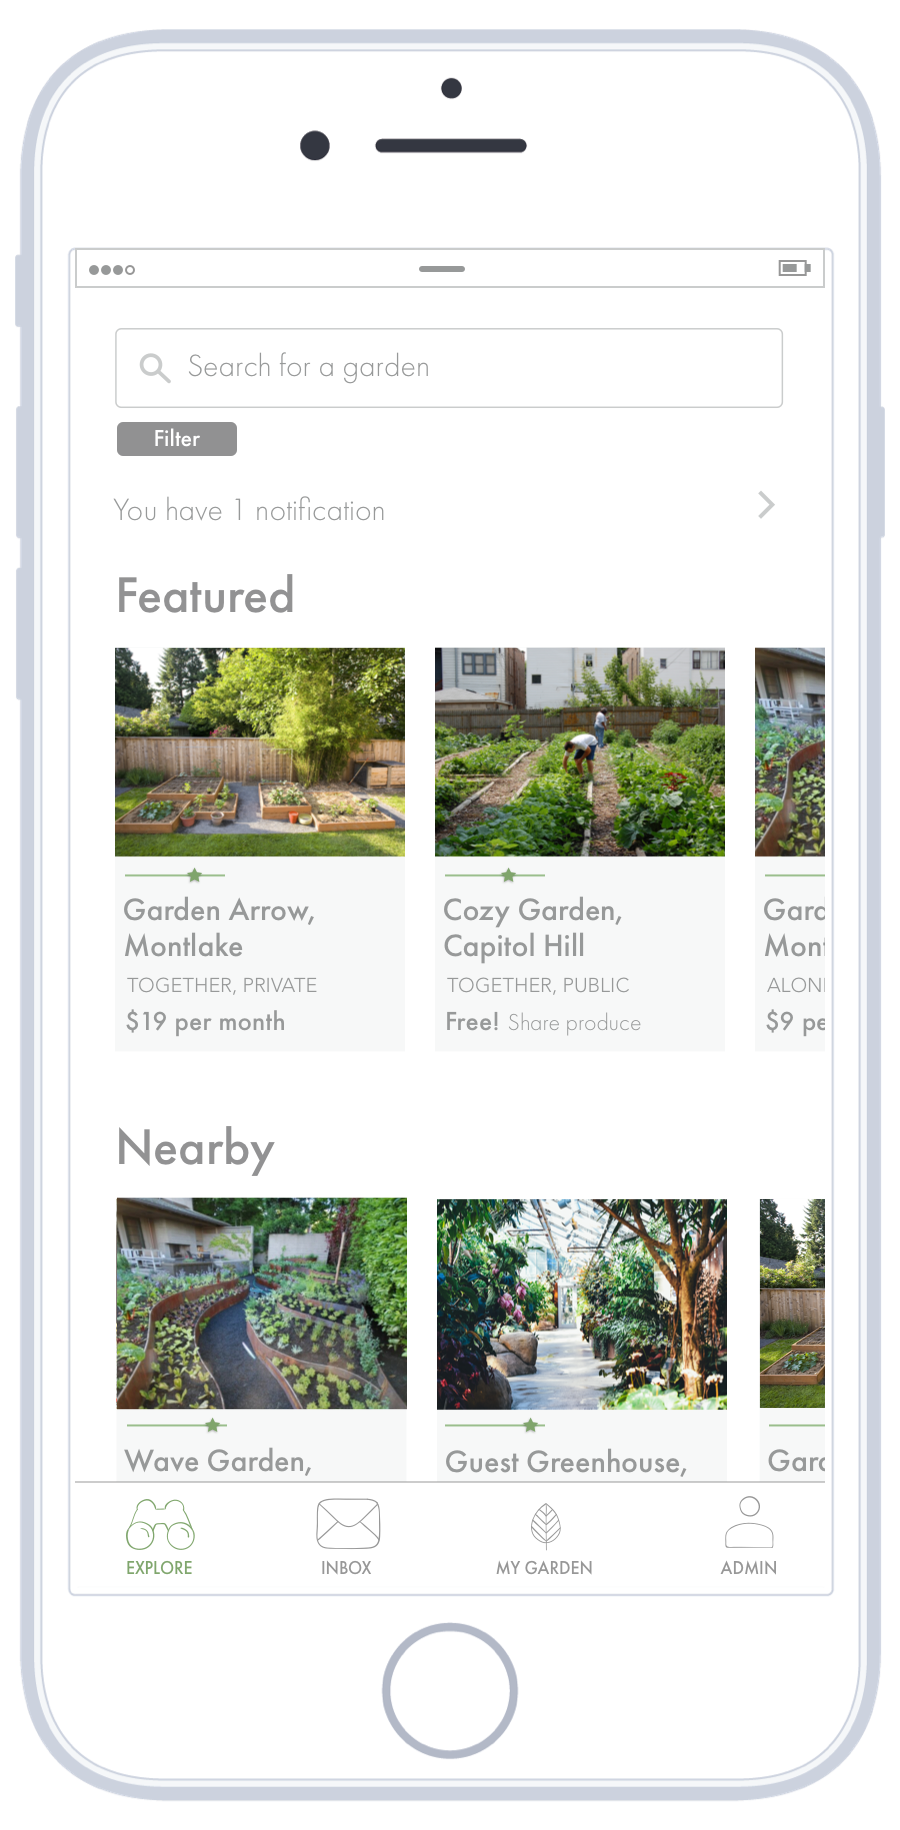 Find a nearby garden   Search for a nearby garden, and apply for a plot to garden.